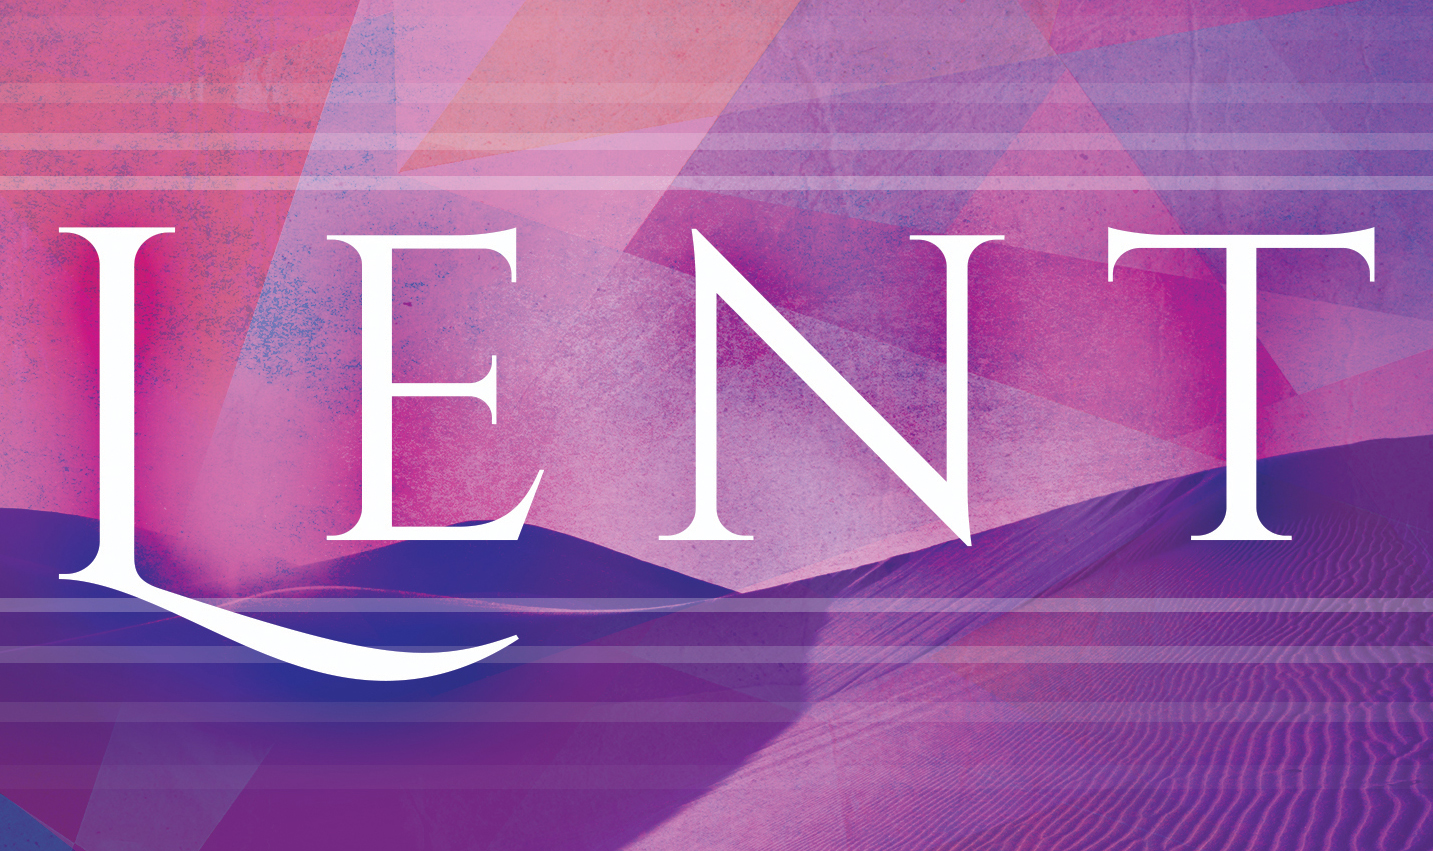 Lent - Lenten observances and regulations are observed by Catholics all around the world.